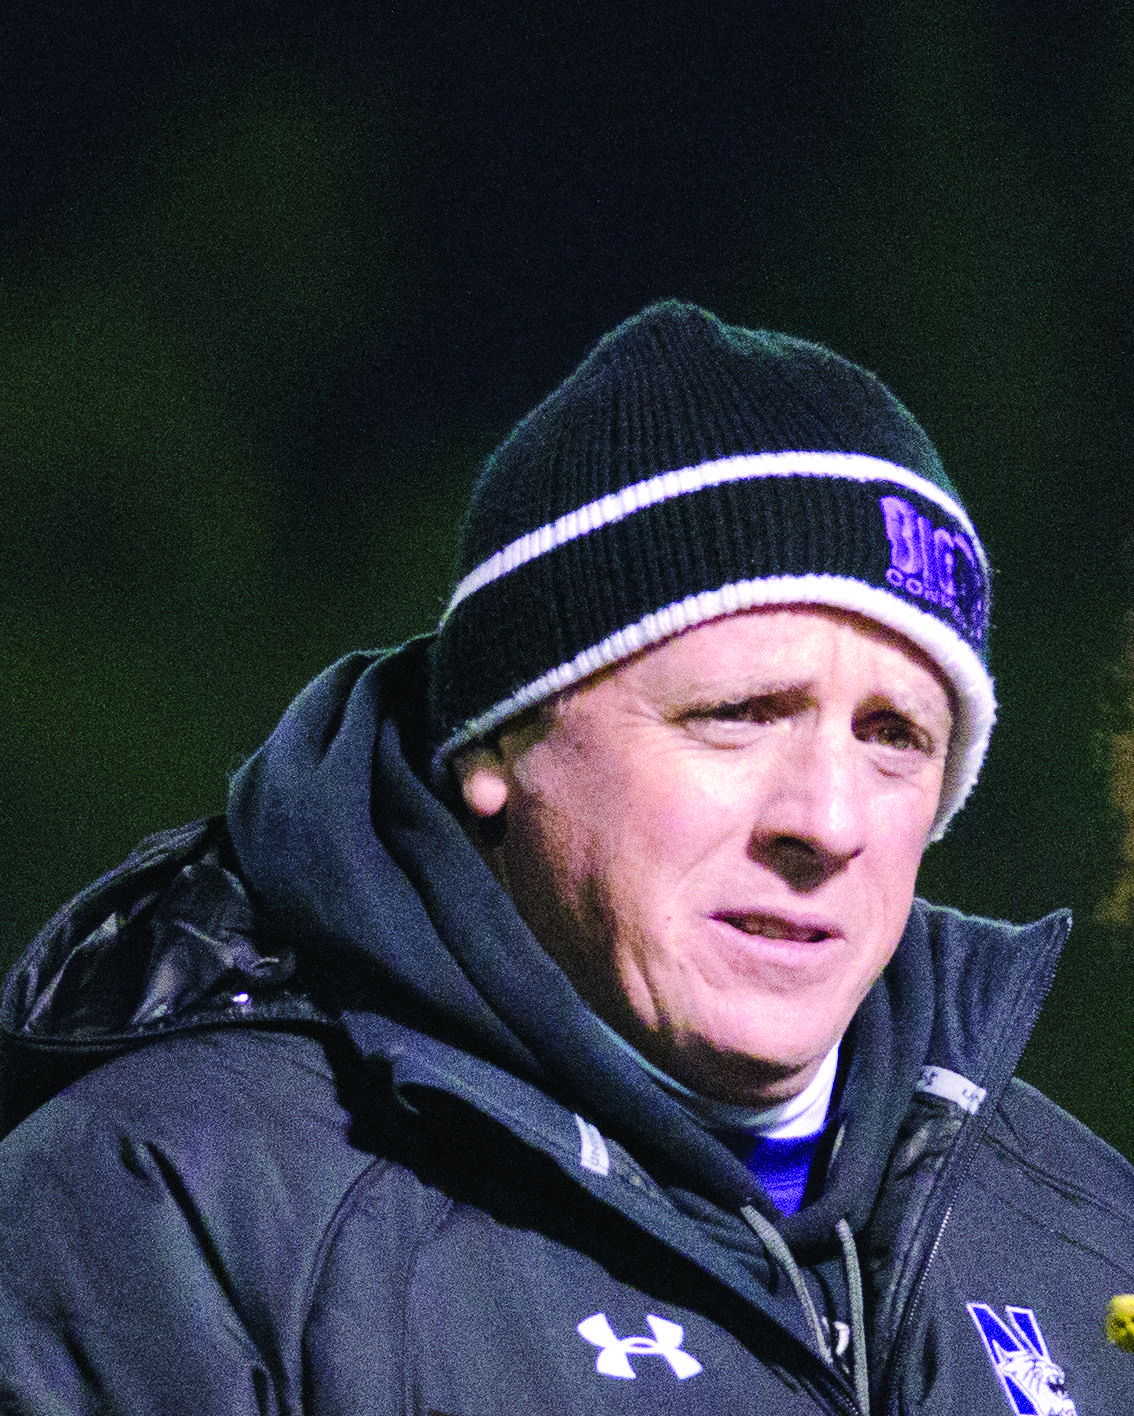 Coach Tim Lenahan has quietly built up men's soccer into what he said he believes is the best men's sports program at Northwestern. Under his leadership, the team has recorded 10 consecutive winning regular seasons and also won the Big Ten Championship in 2011 and 2012.